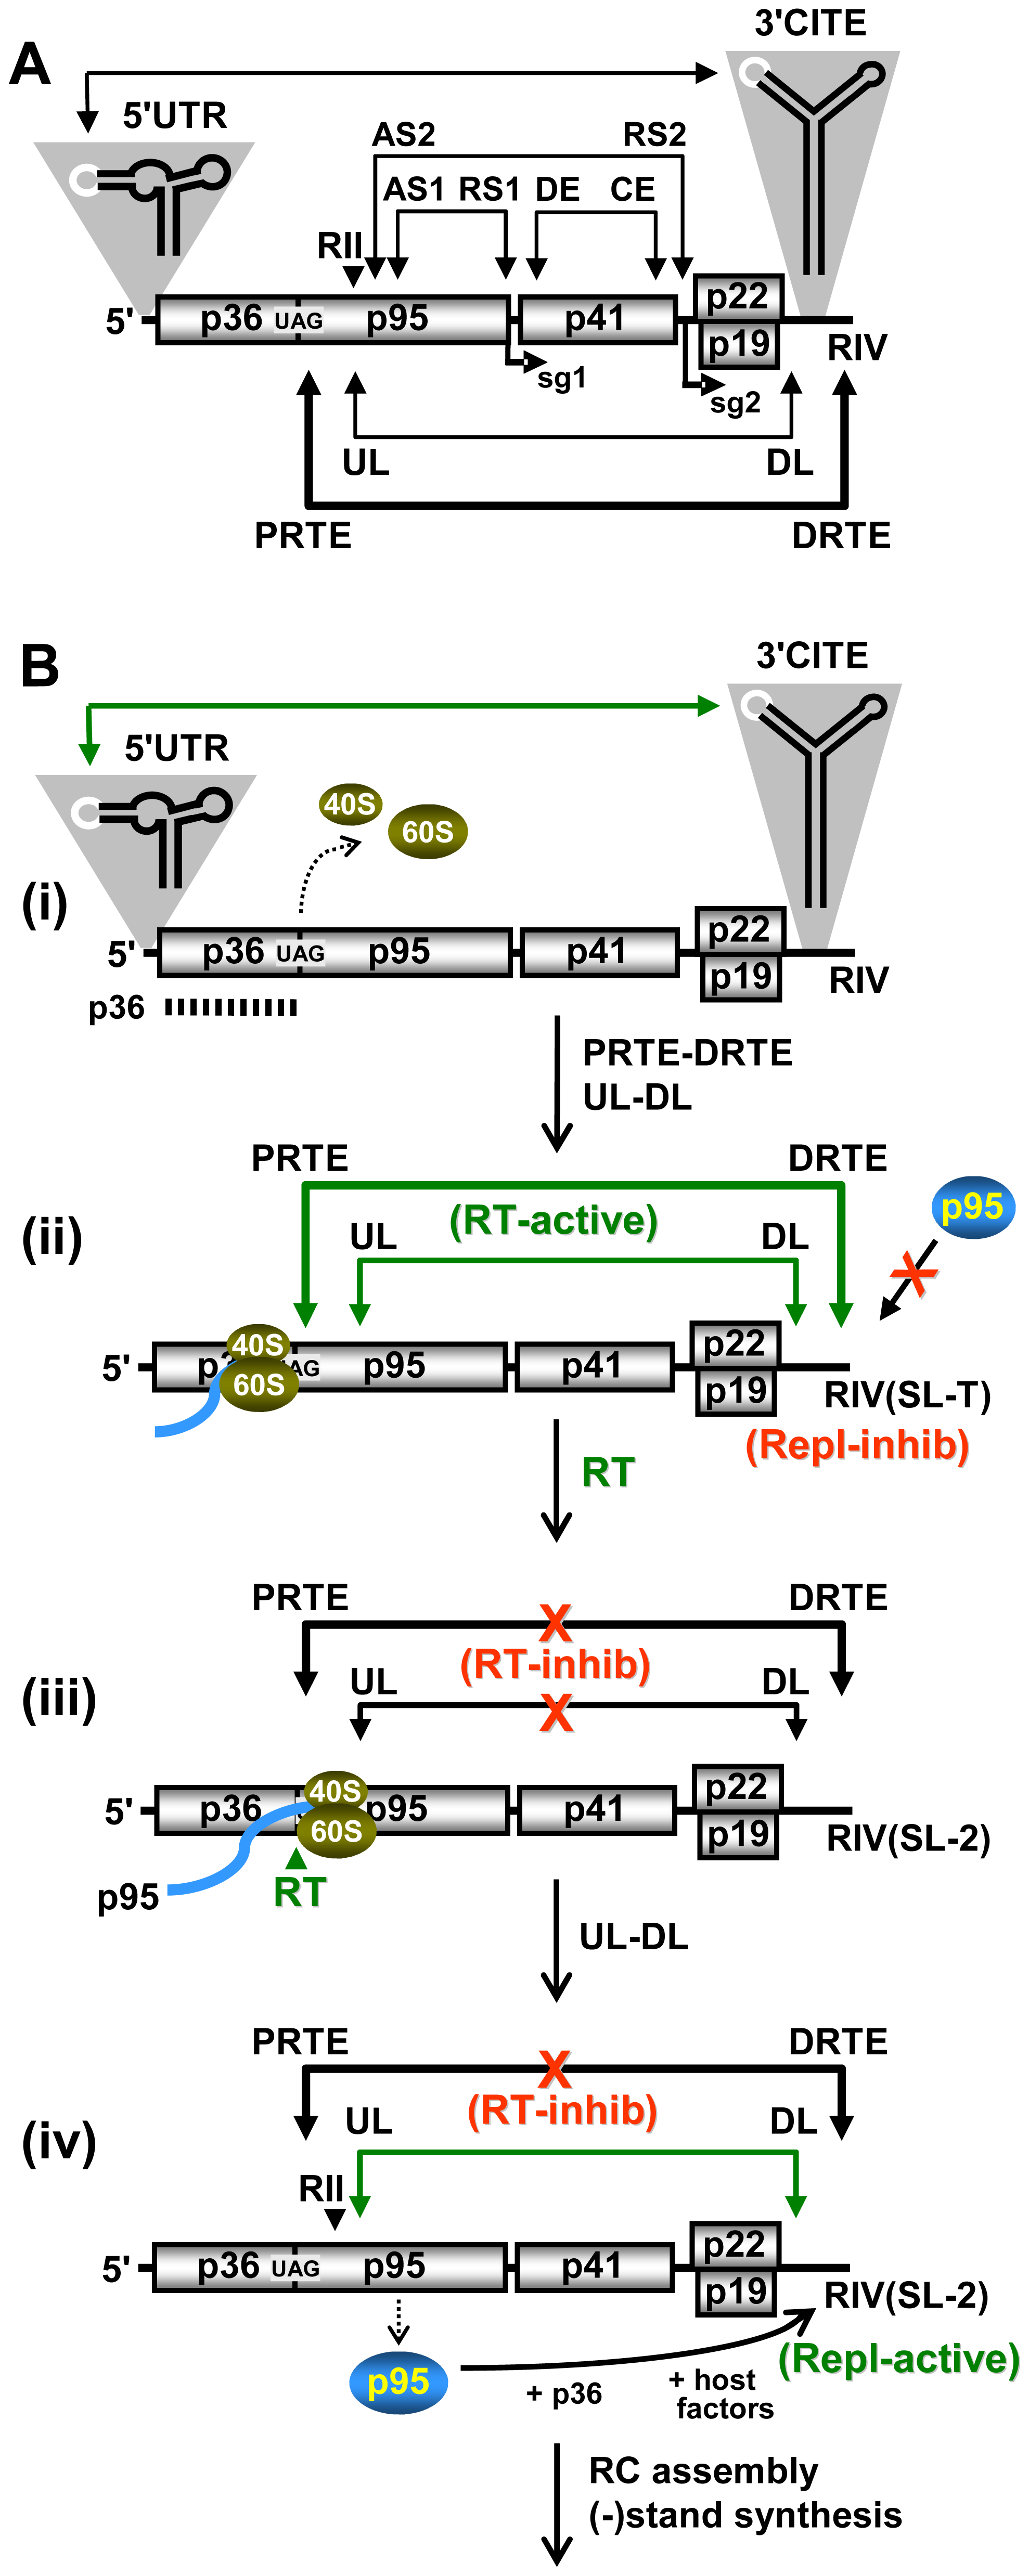 Proposed RNA-based regulatory network modulating RT and genome replication in CIRV.